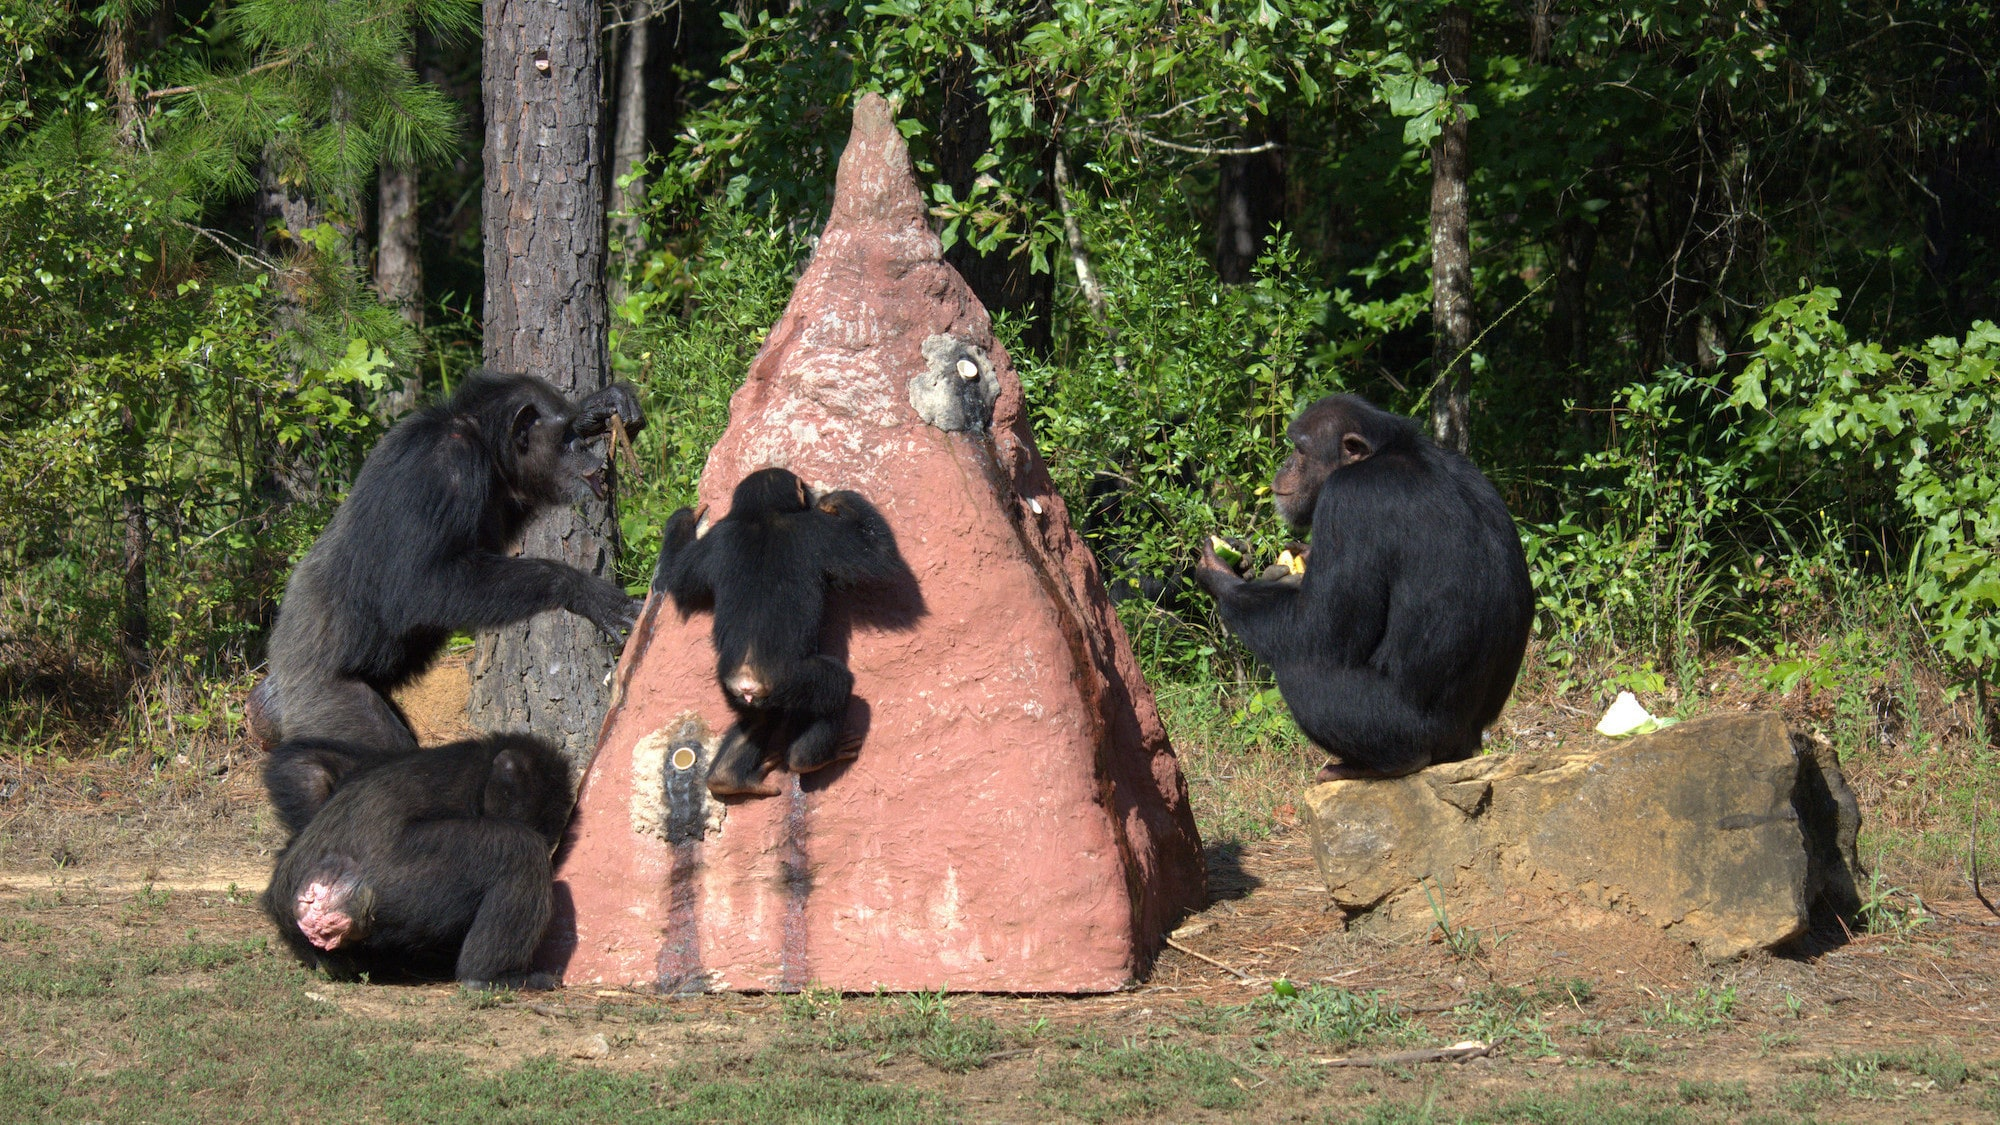 Keithville, Louisiana - Carlee termite fishing with four other Chimps from Flora's group. (National Geographic/Virginia Quinn)